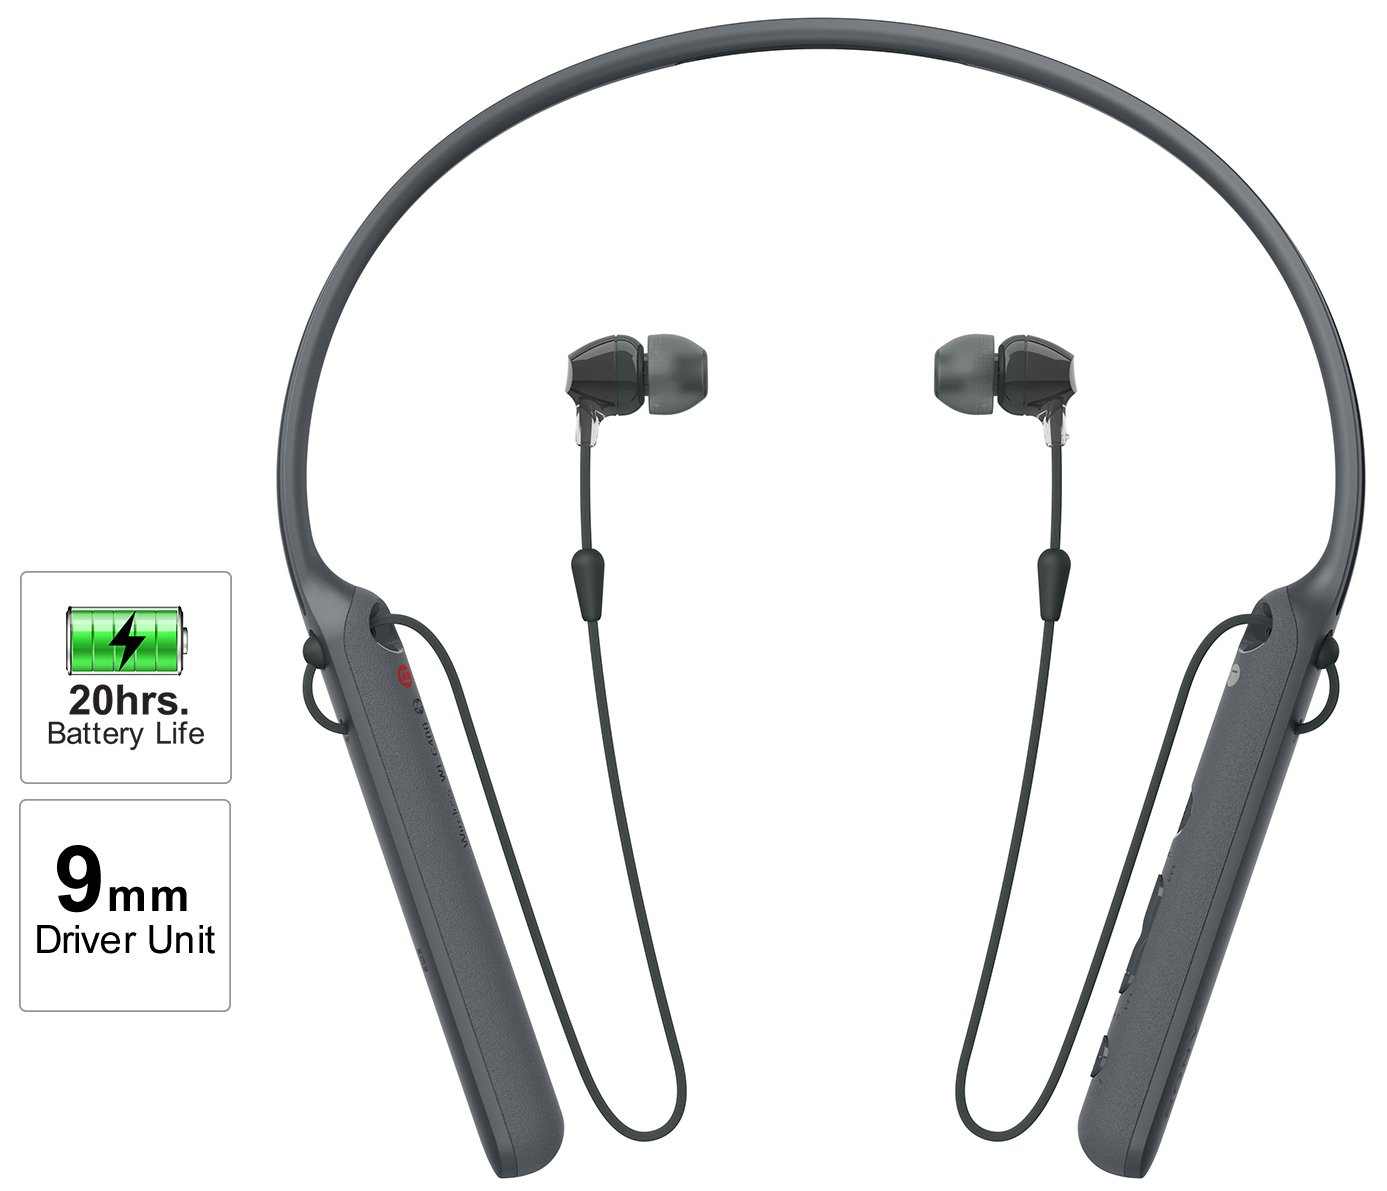 Sony C400 Wireless Behind Neck In Ear Headphone Black Lithium Ion 8211 Polymer Usb Battery Charger By Max1811 Electronics